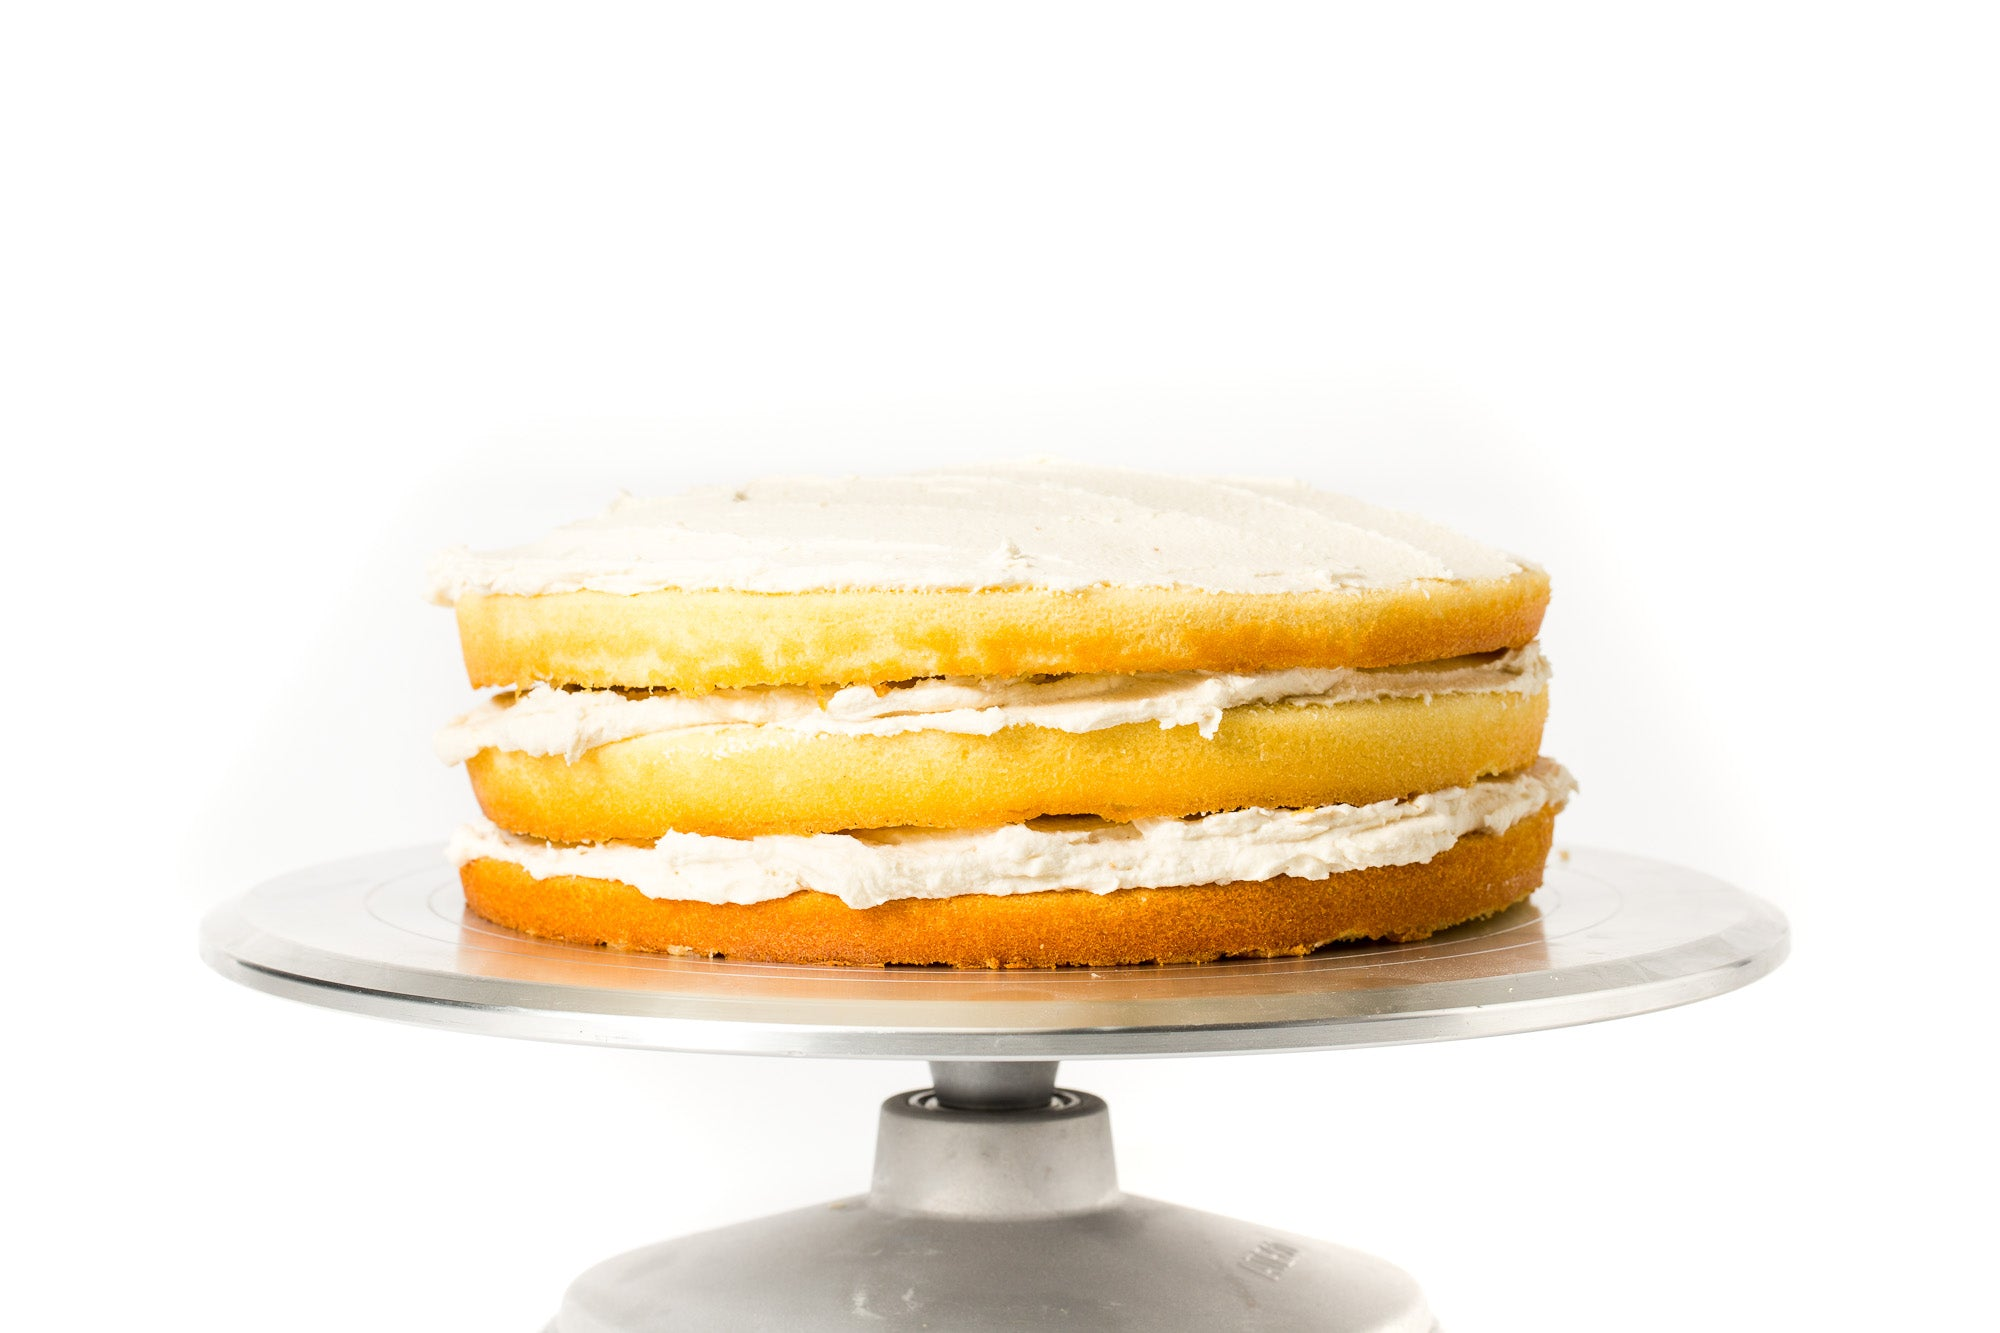 Image of three layers of stacked cakes and frosting for Miss Jones Baking Co Floral Bloom Layer Cake on a cake stand